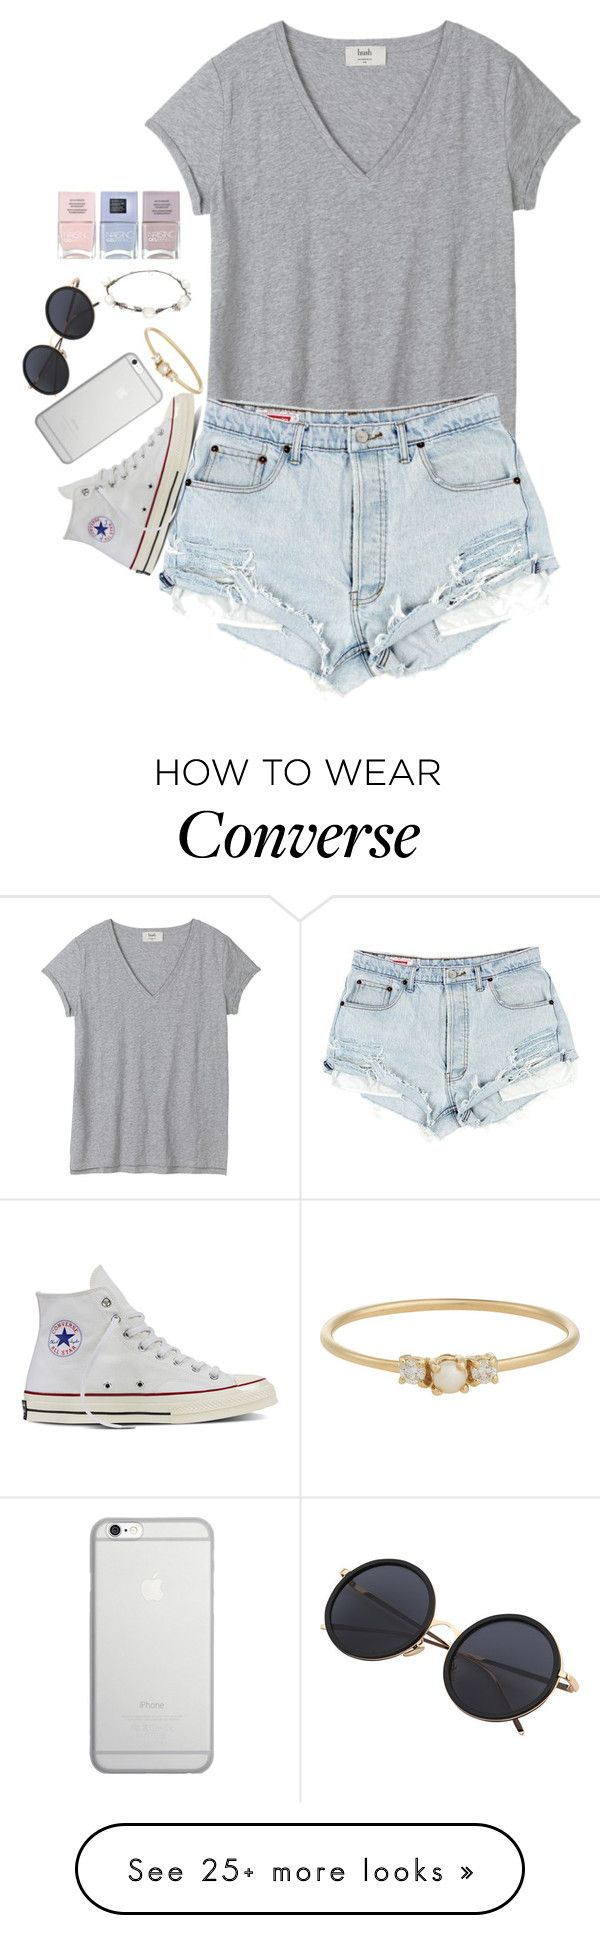 """""""Summer nights"""" by josie-posie on Polyvore featuring Converse, Native Union, Jennie Kwon, Lipsy and Nails Inc."""